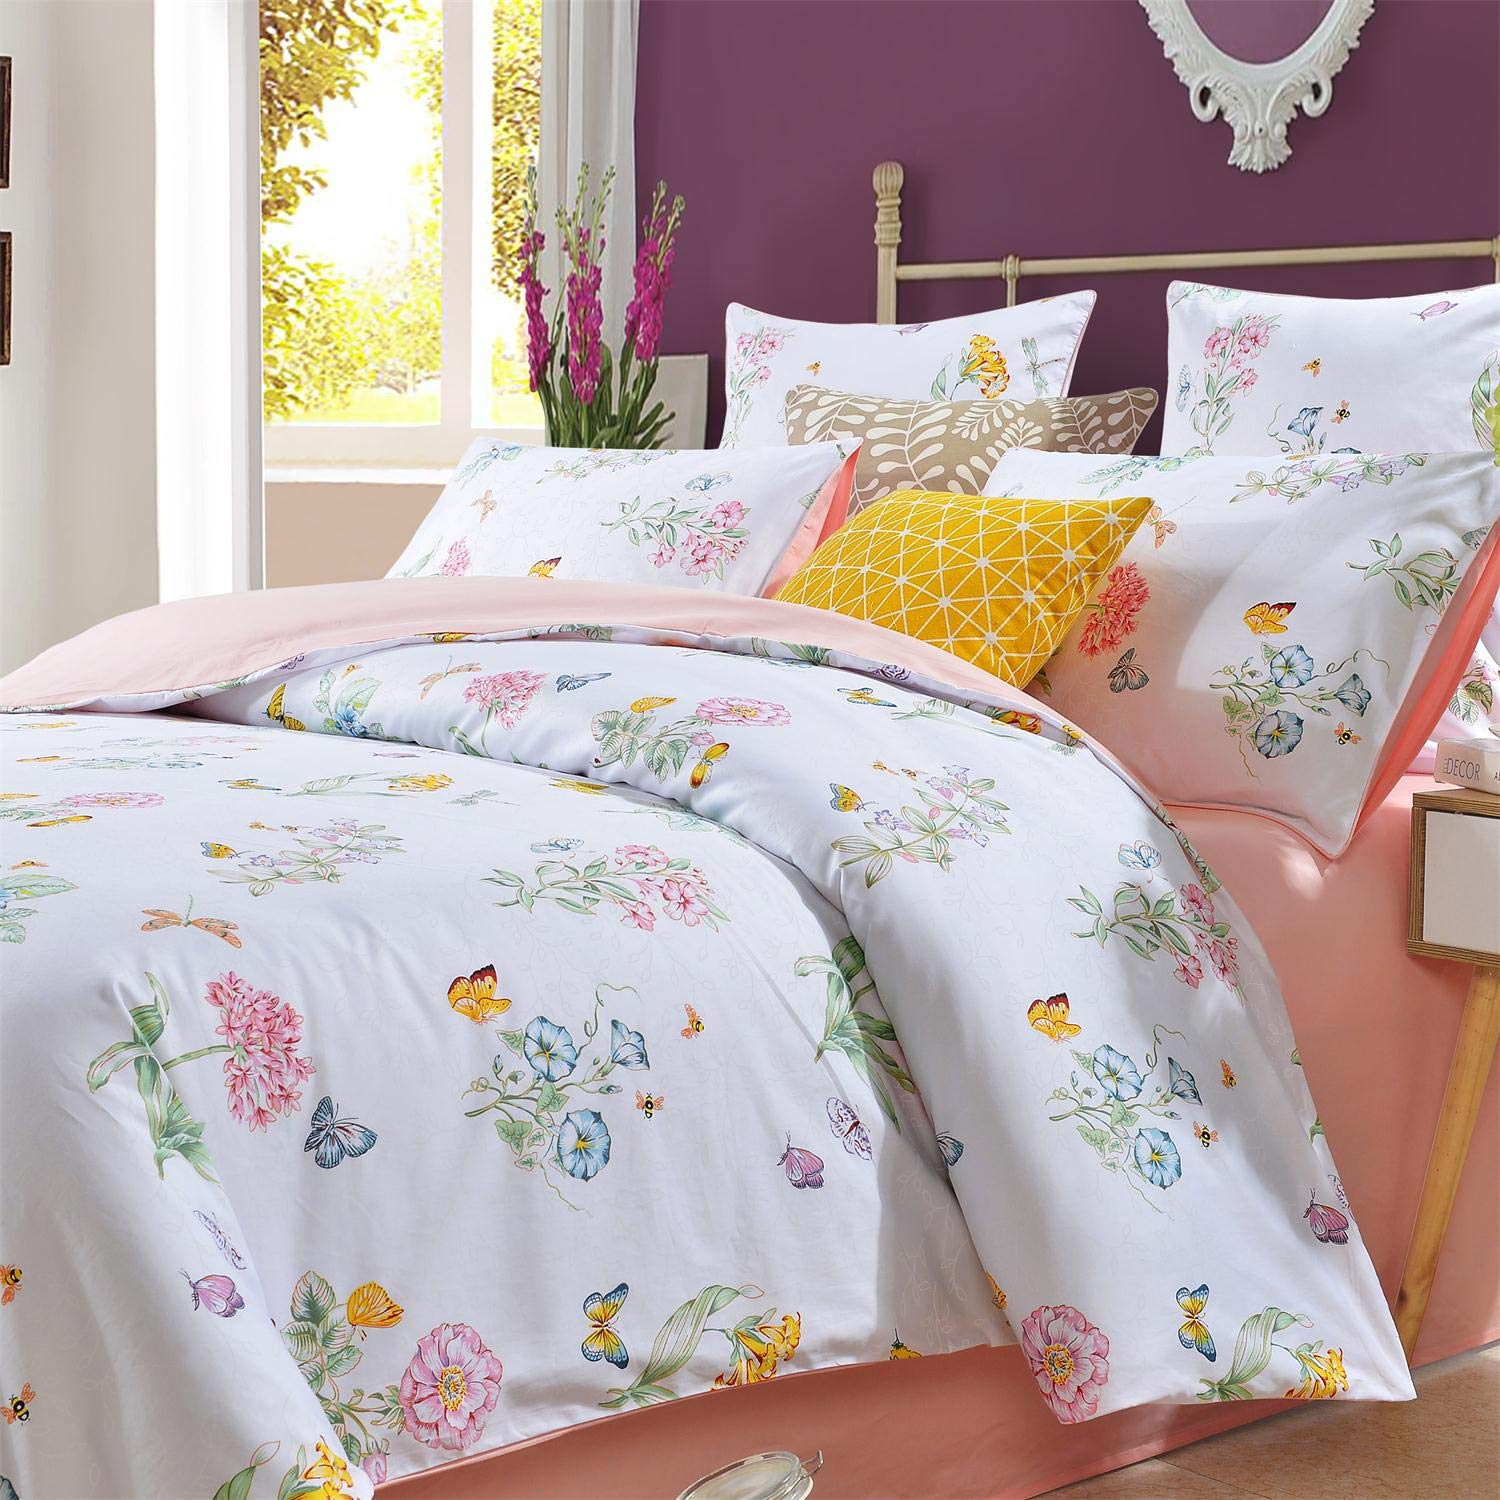 Softta Shabby Floral Bedding Set Twin 3 Pcs Princess Bedding Girls Duvet Cover 100% Egyptian Cotton 800 Thread Count Morning Glory Butterfly Pattern by Softta